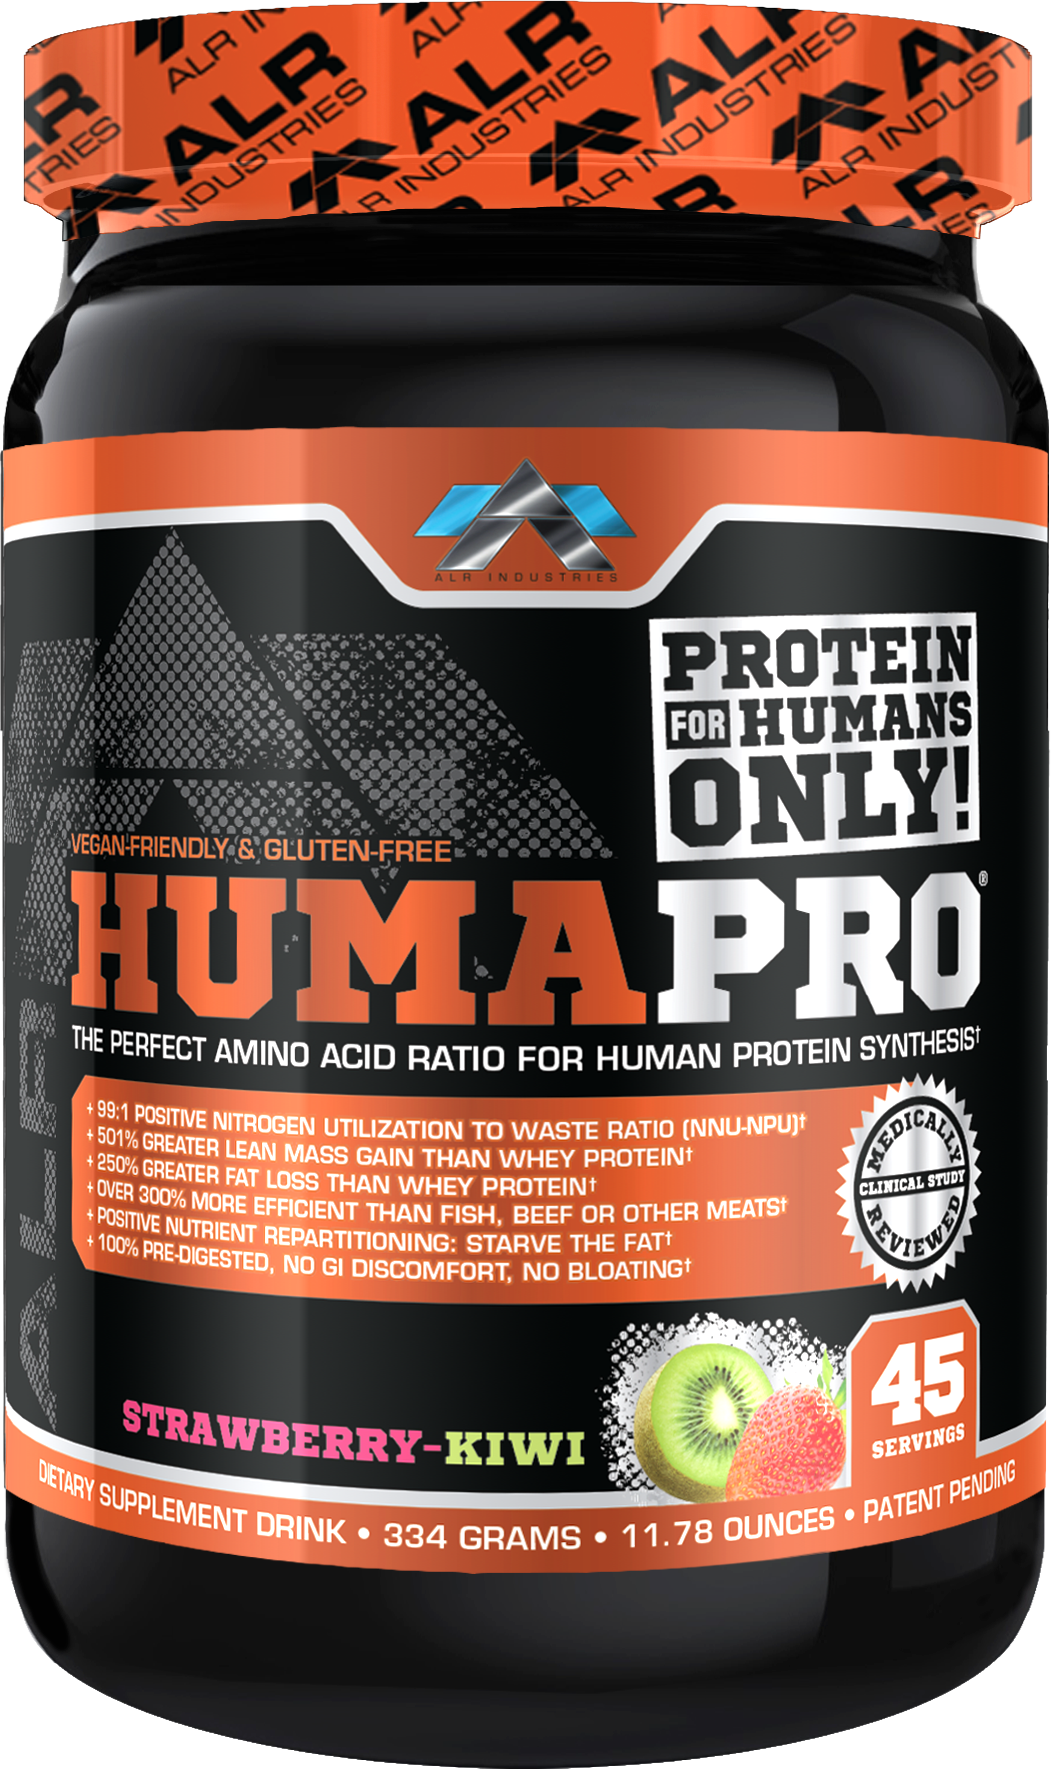 HumaPro – Protein Synthesis Perfected by ALRI!